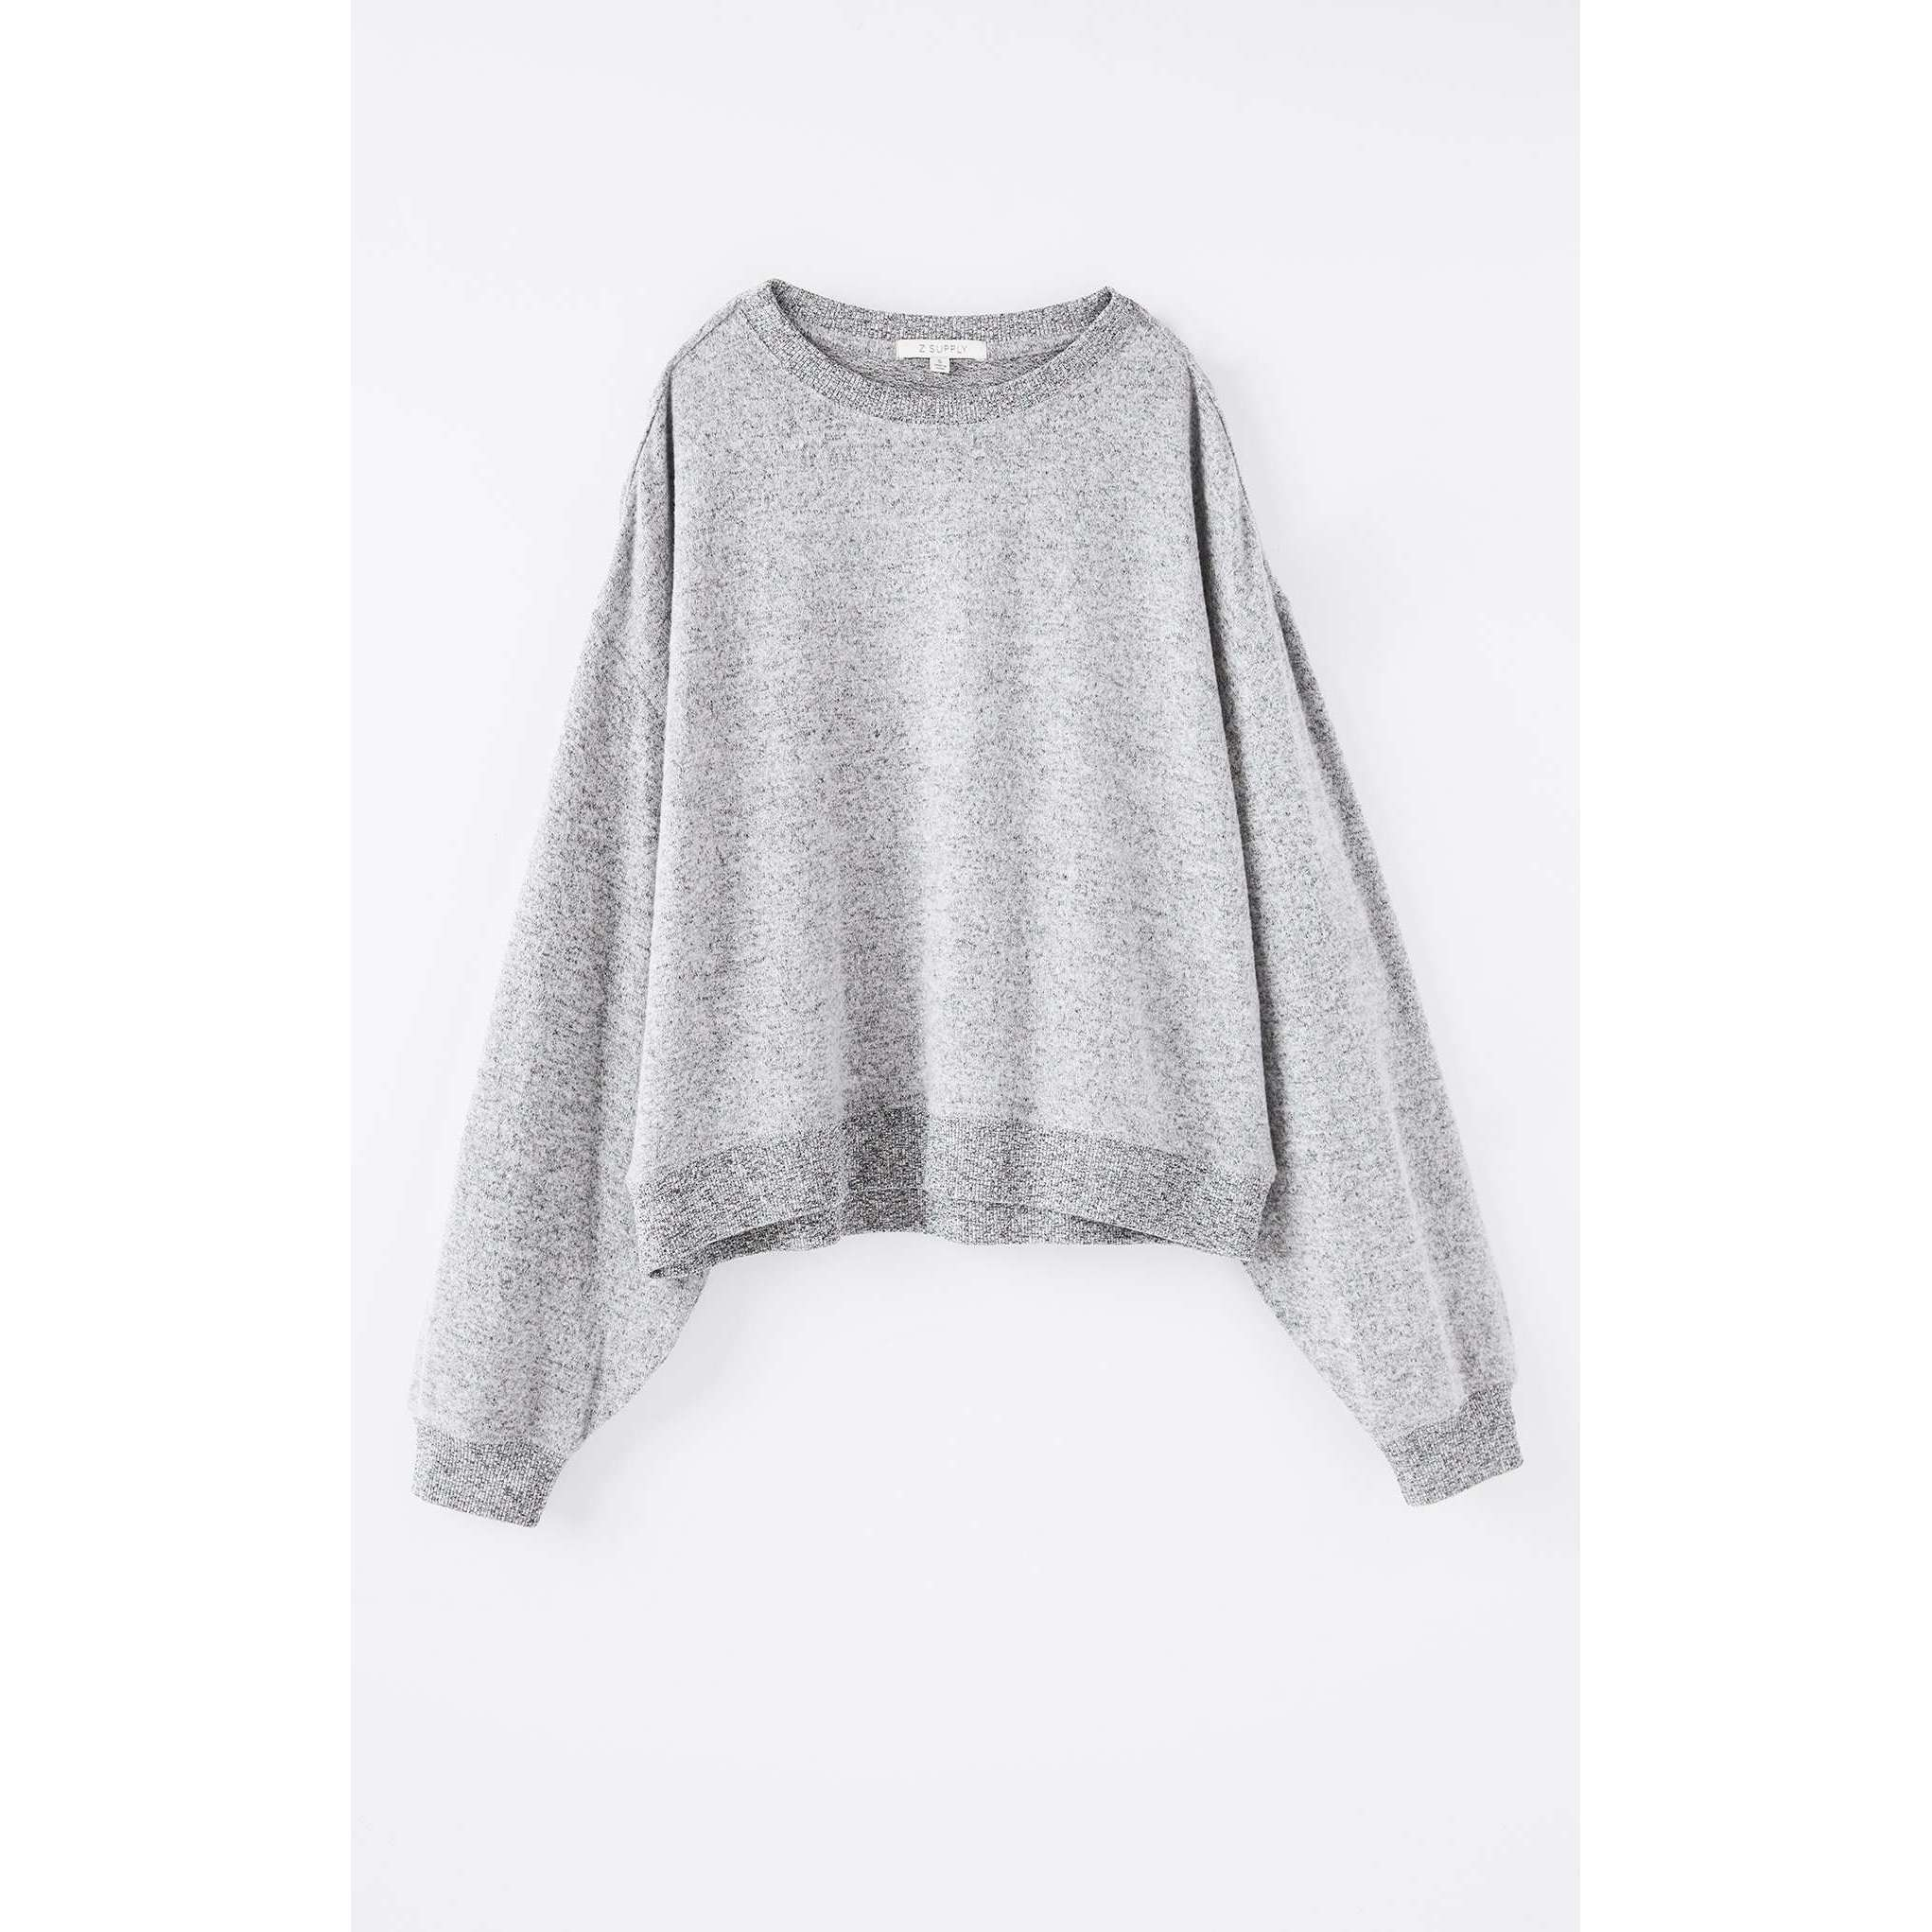 8.28 Boutique:Z-Supply,Z-Supply Noa Marled Top,Loungewear